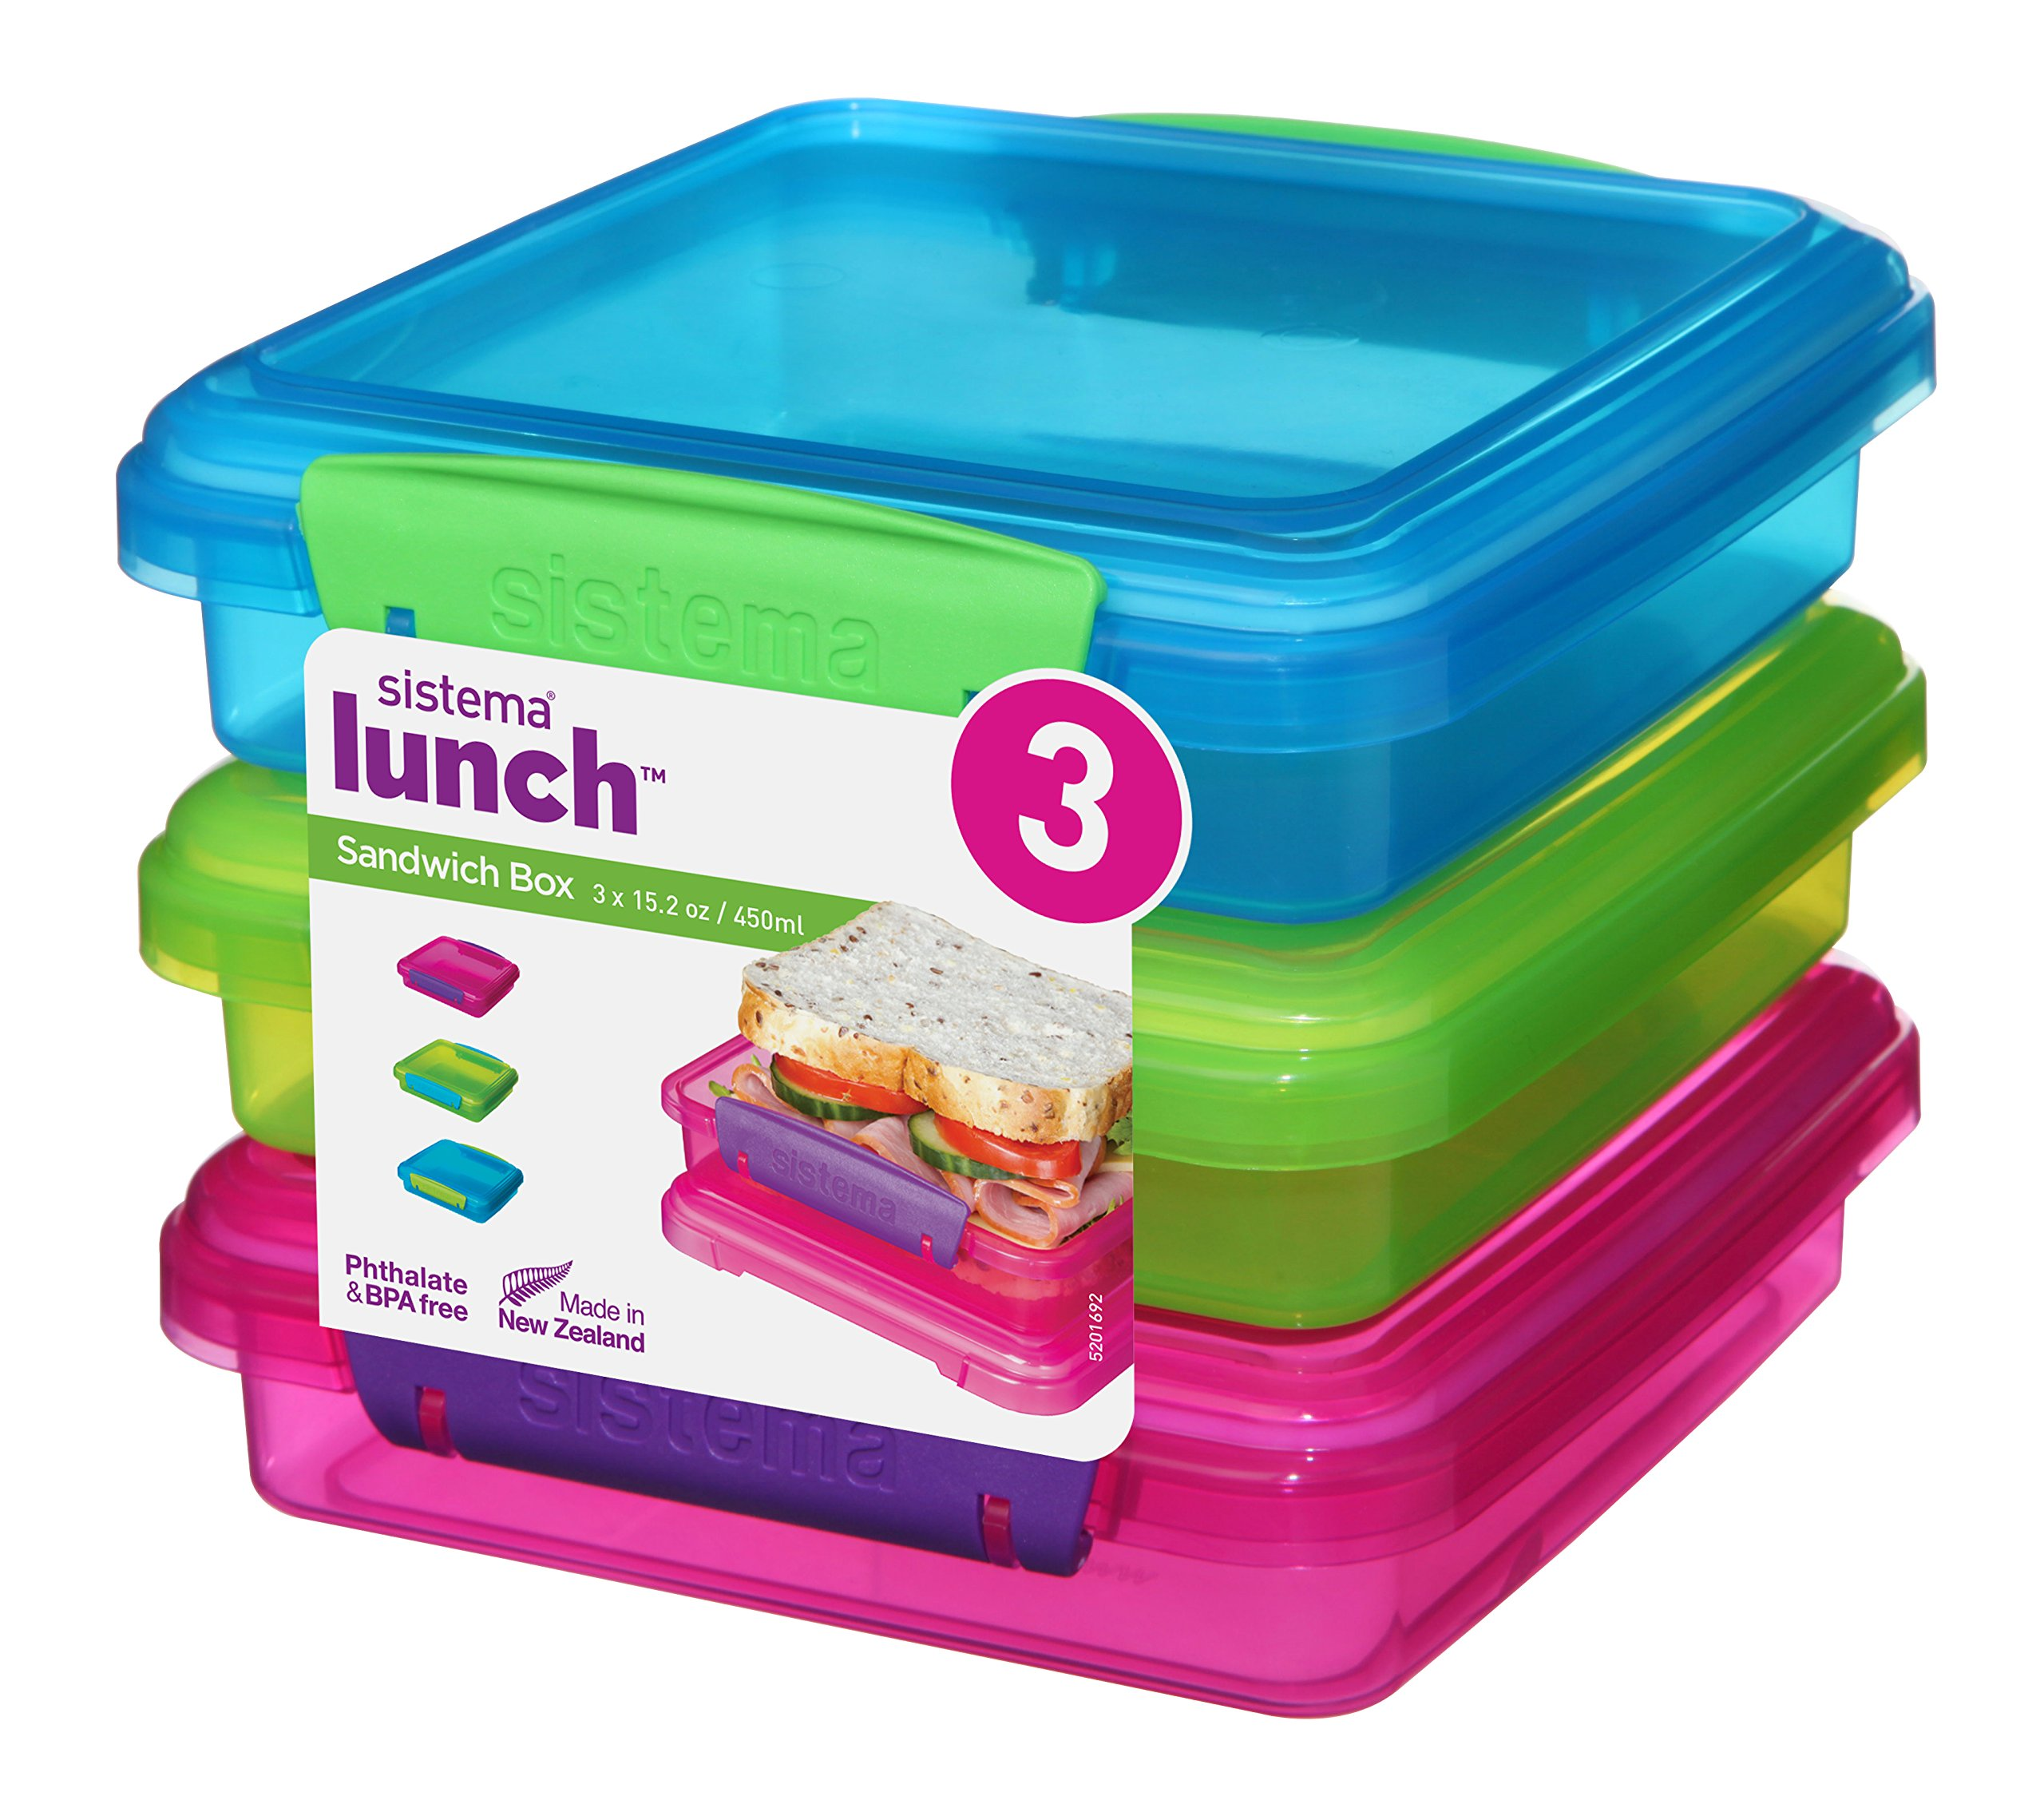 Merveilleux Details About Sistema Lunch Collection Sandwich Box Food Storage  Containers, 15.2 Ounce